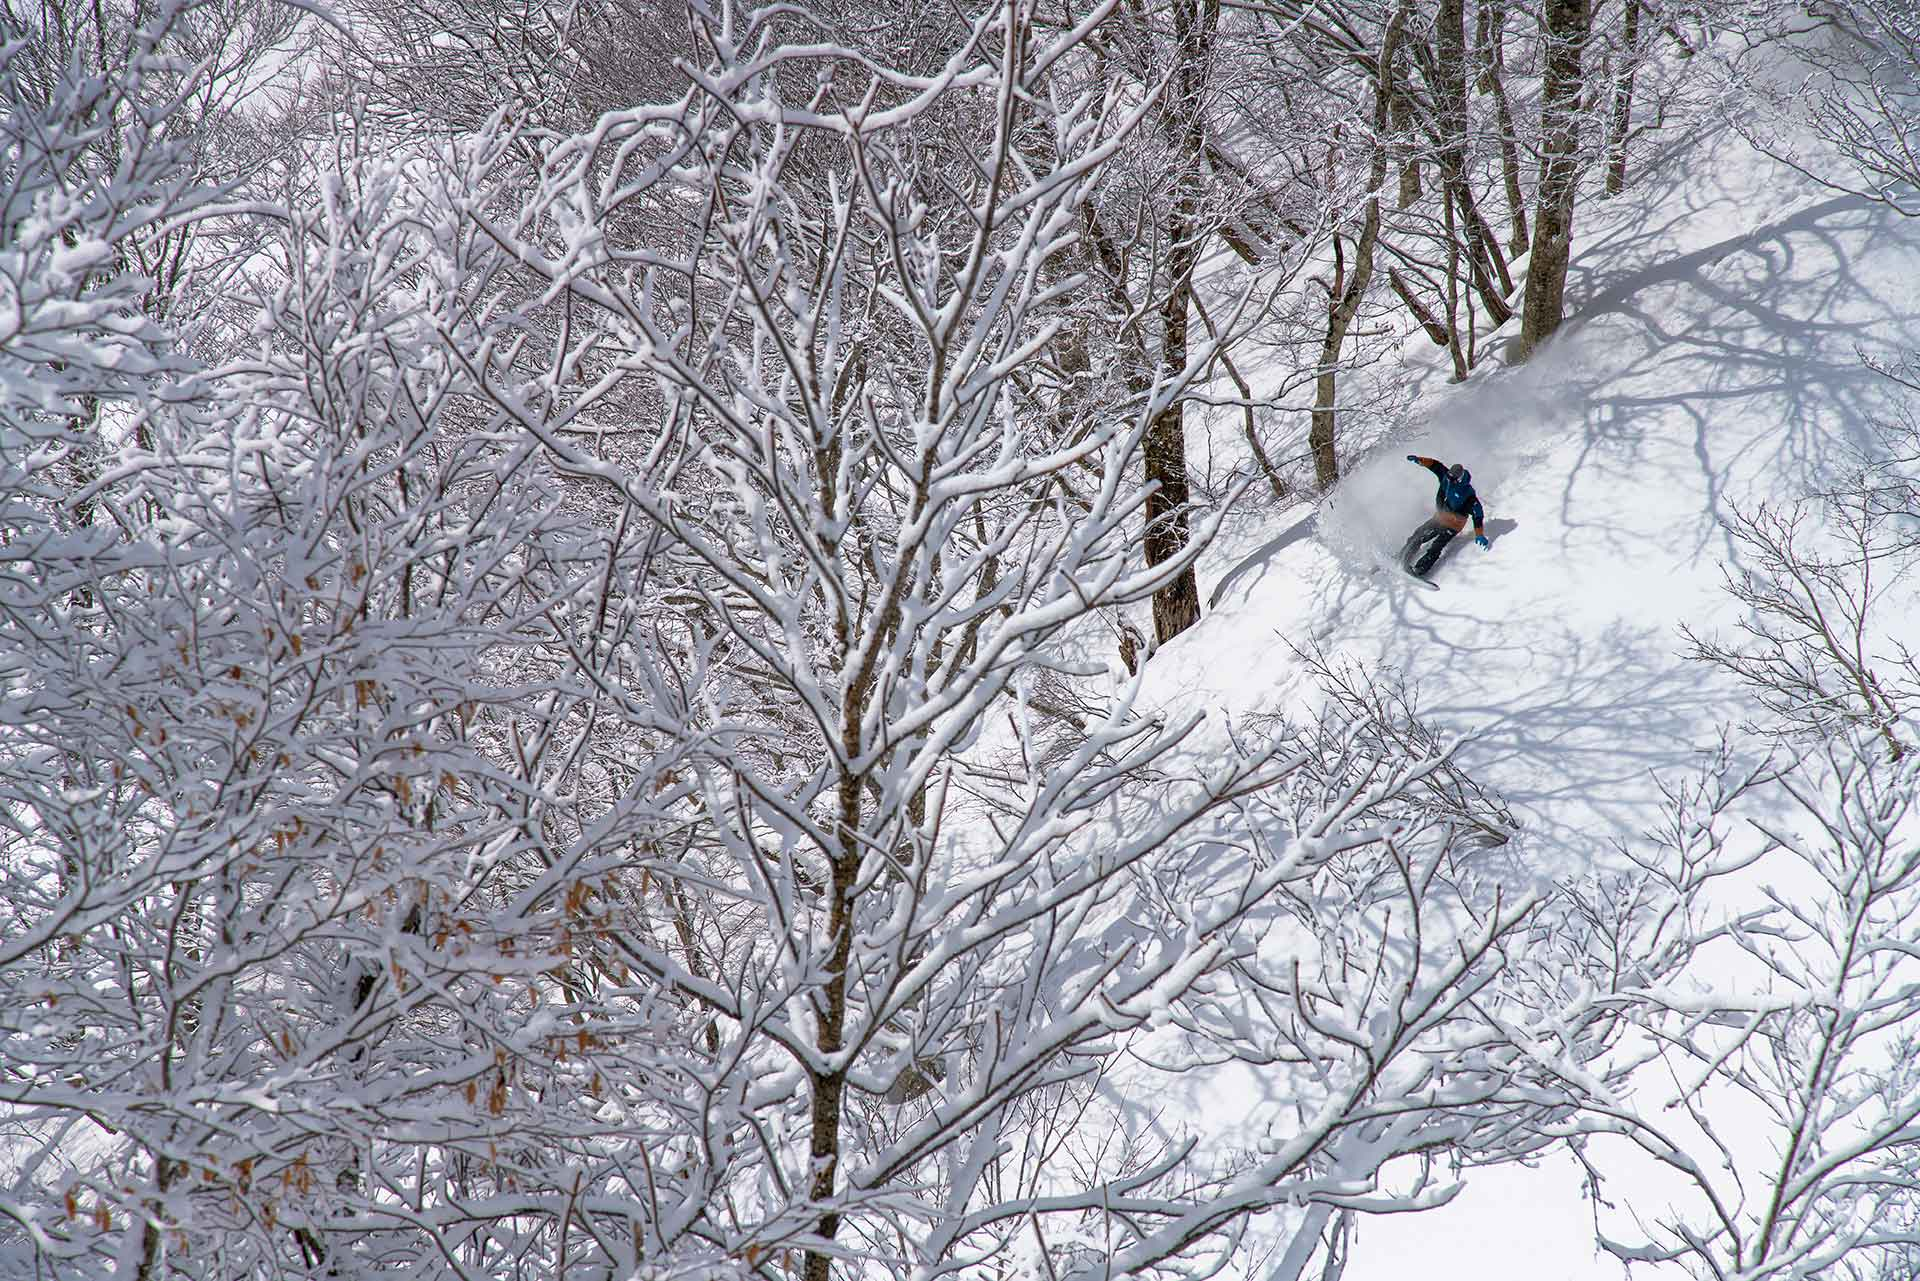 Take a look at Aizu a secluded ski paradise. Best kept ski secret of Japan's Main Island.